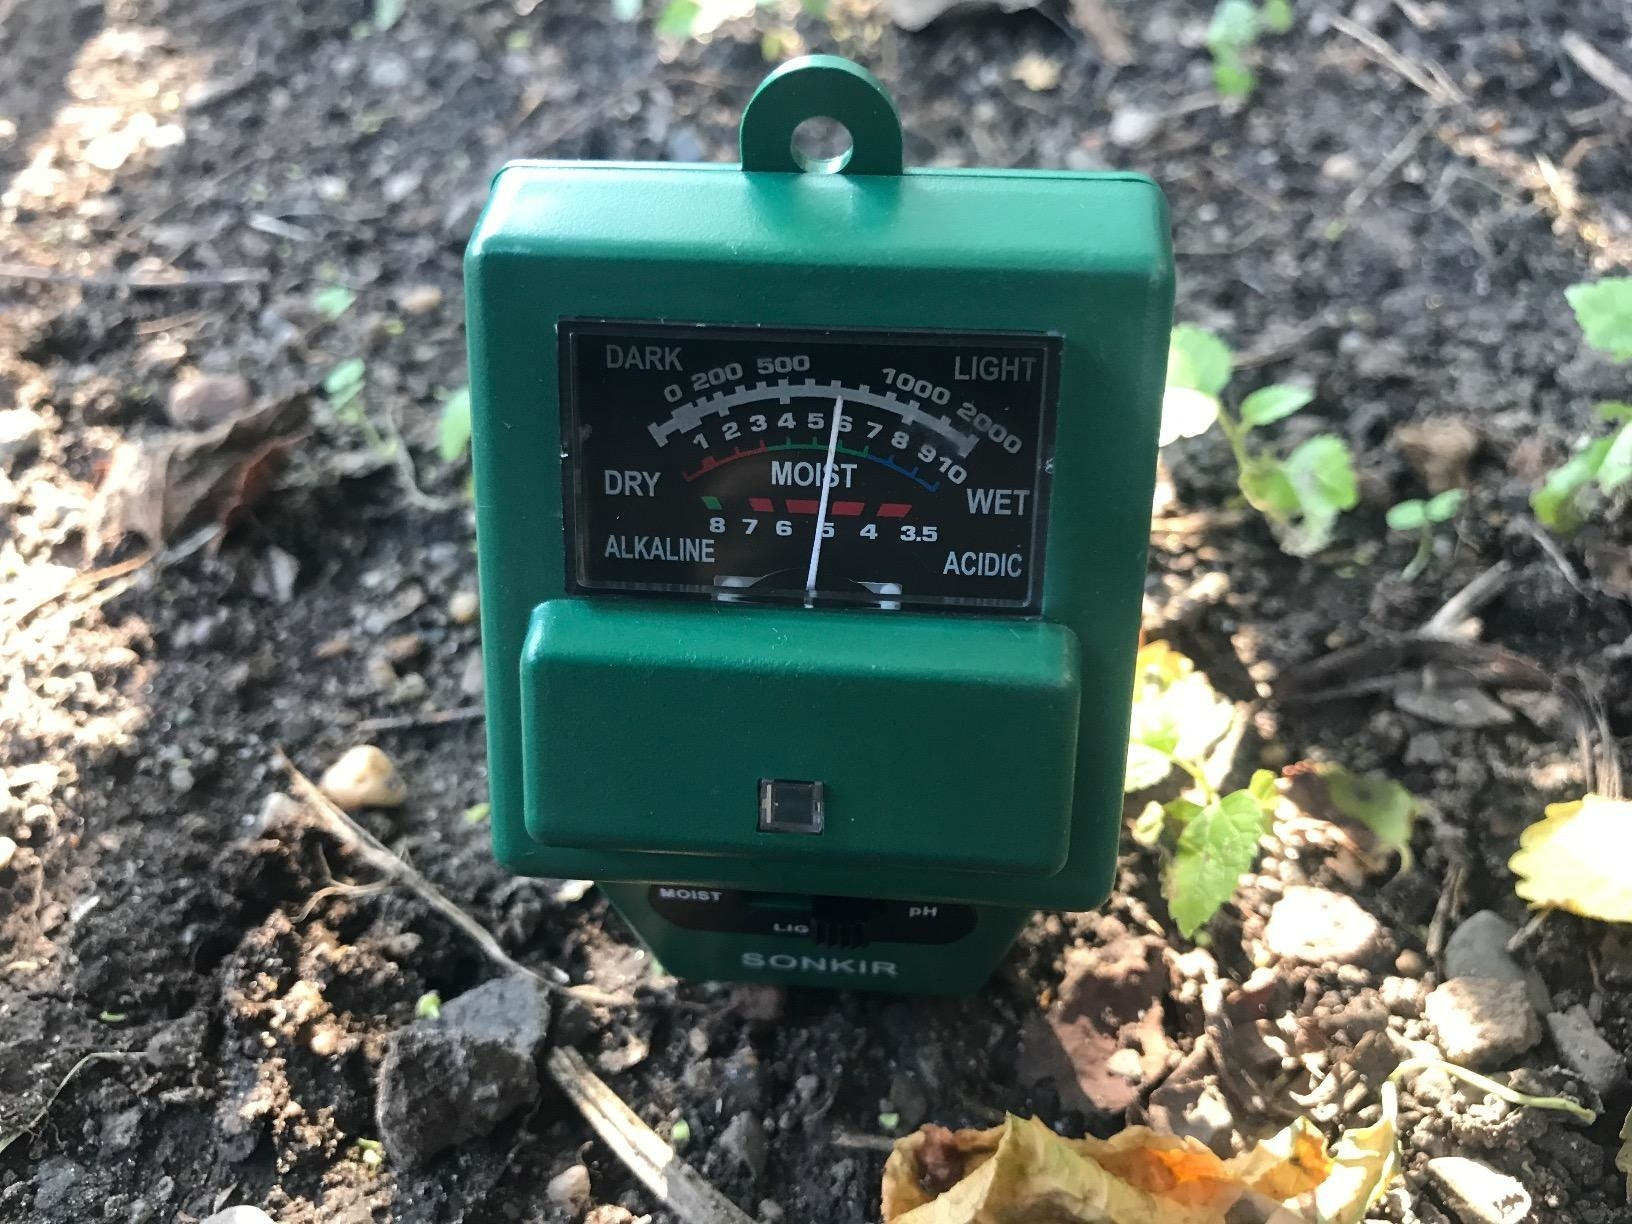 The meter sitting in the dirt